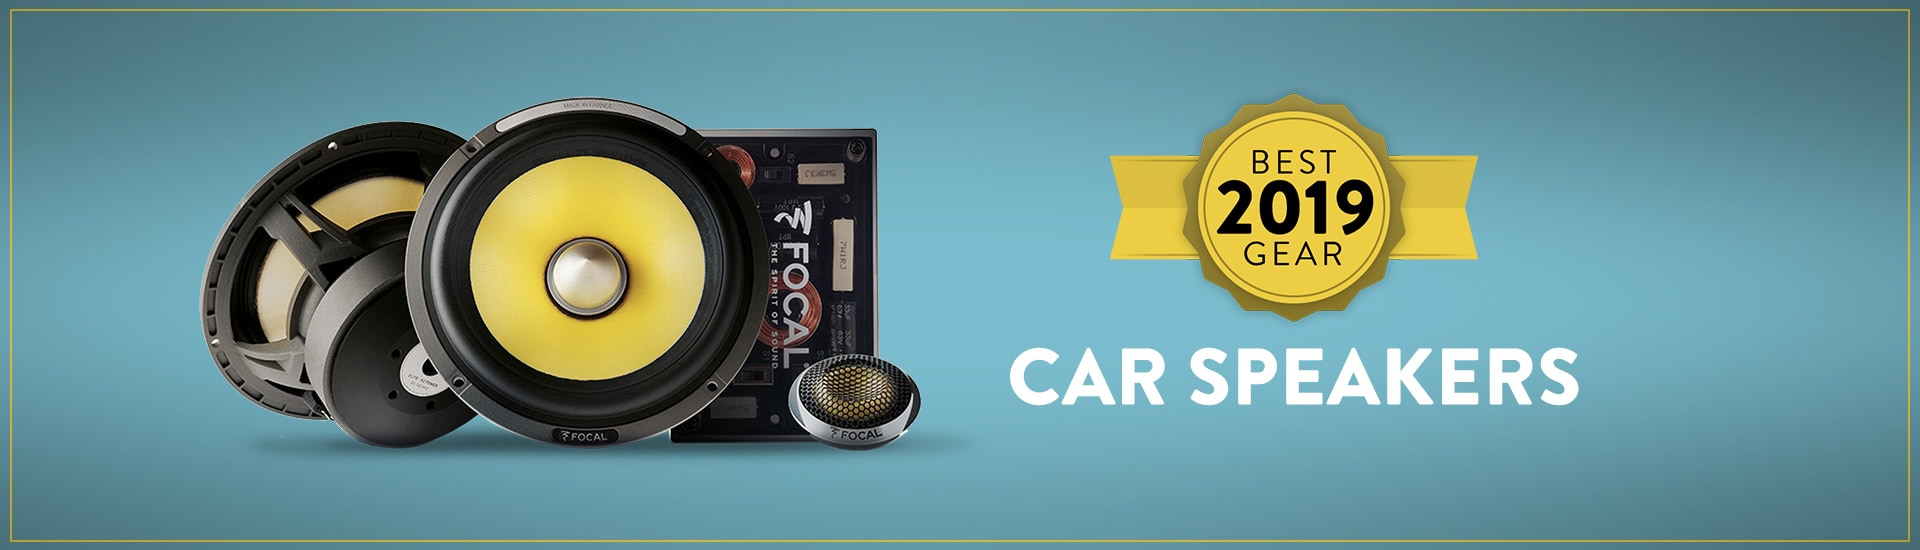 20190717 2019 best car speakers blog header v2